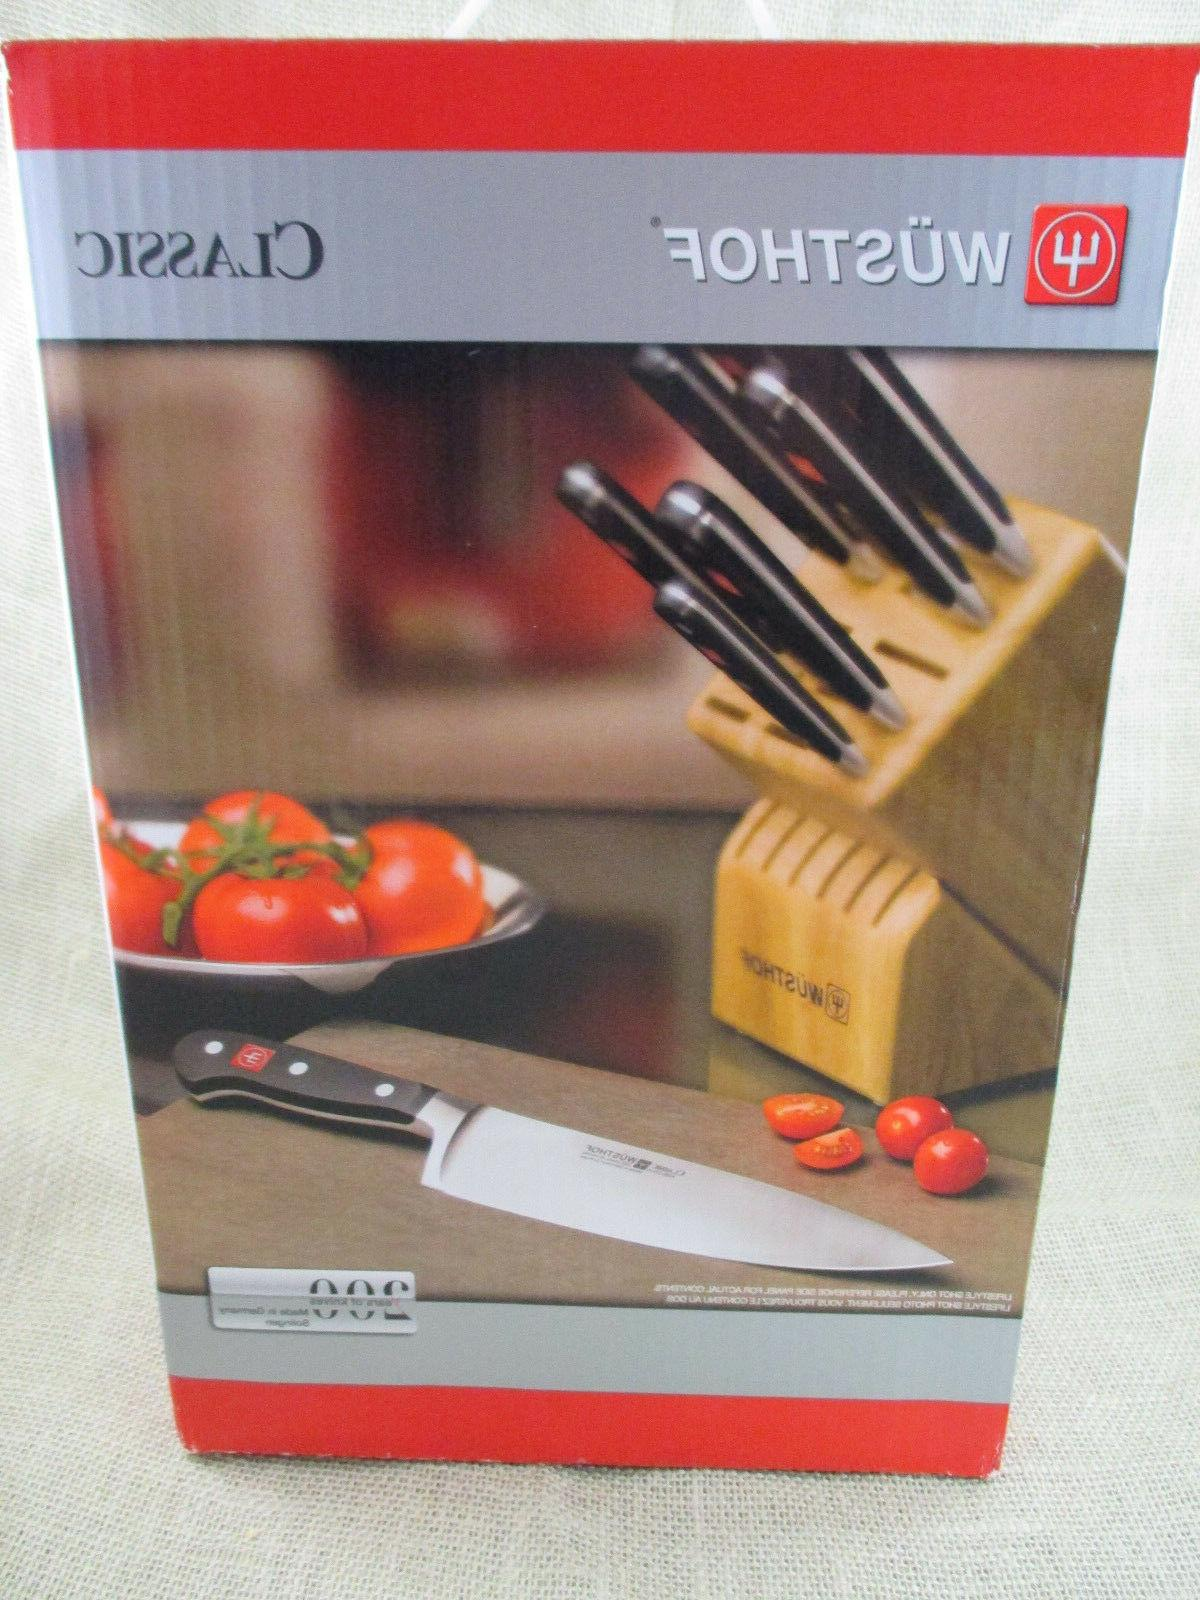 WUSTHOF Classic 7 piece Knife Block Set - 7417-2 - with pull